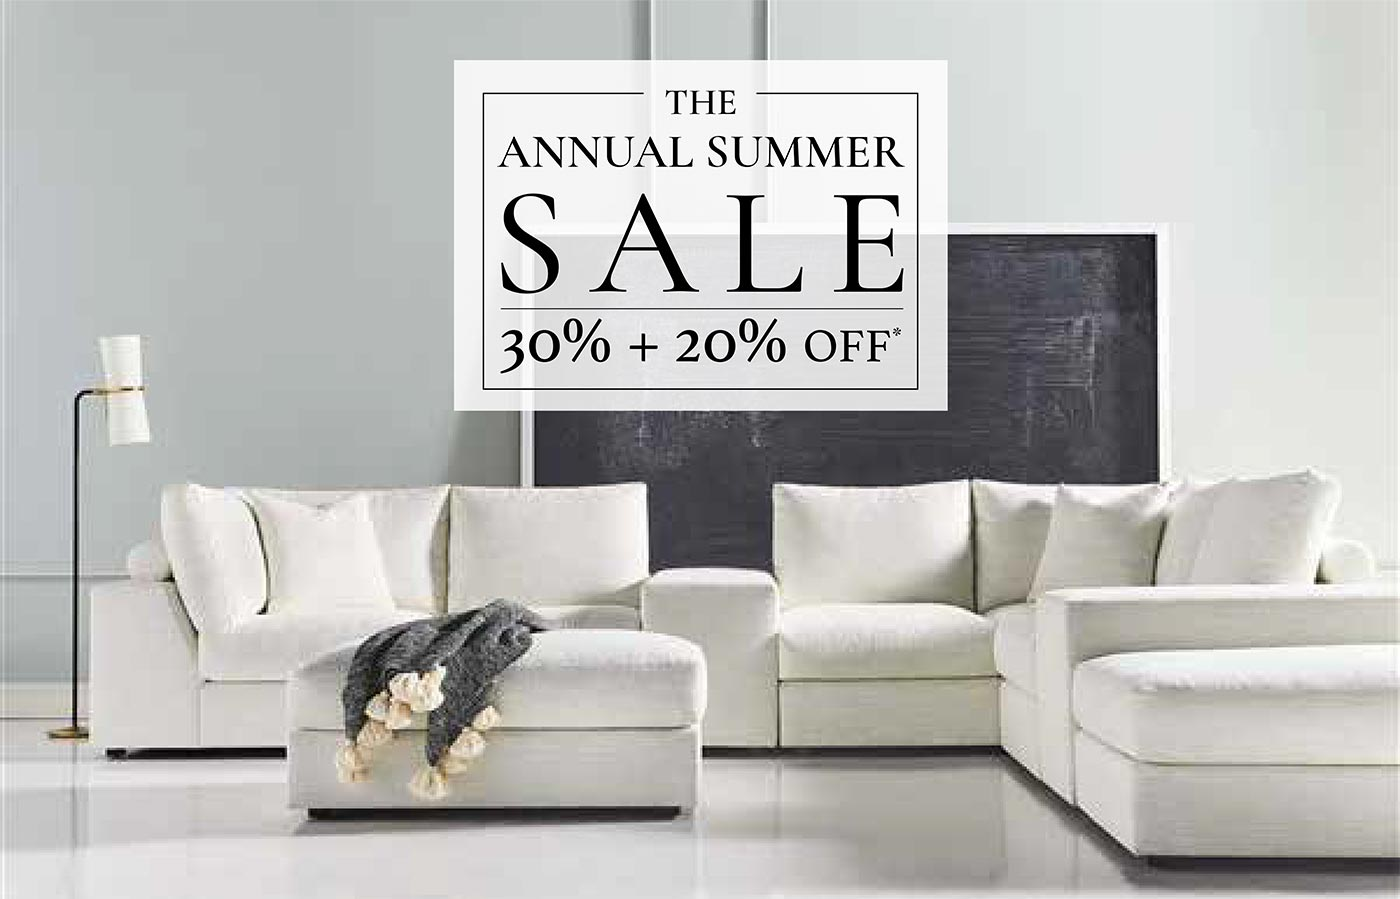 The Annual Summer Sale 30% + 20% Off*